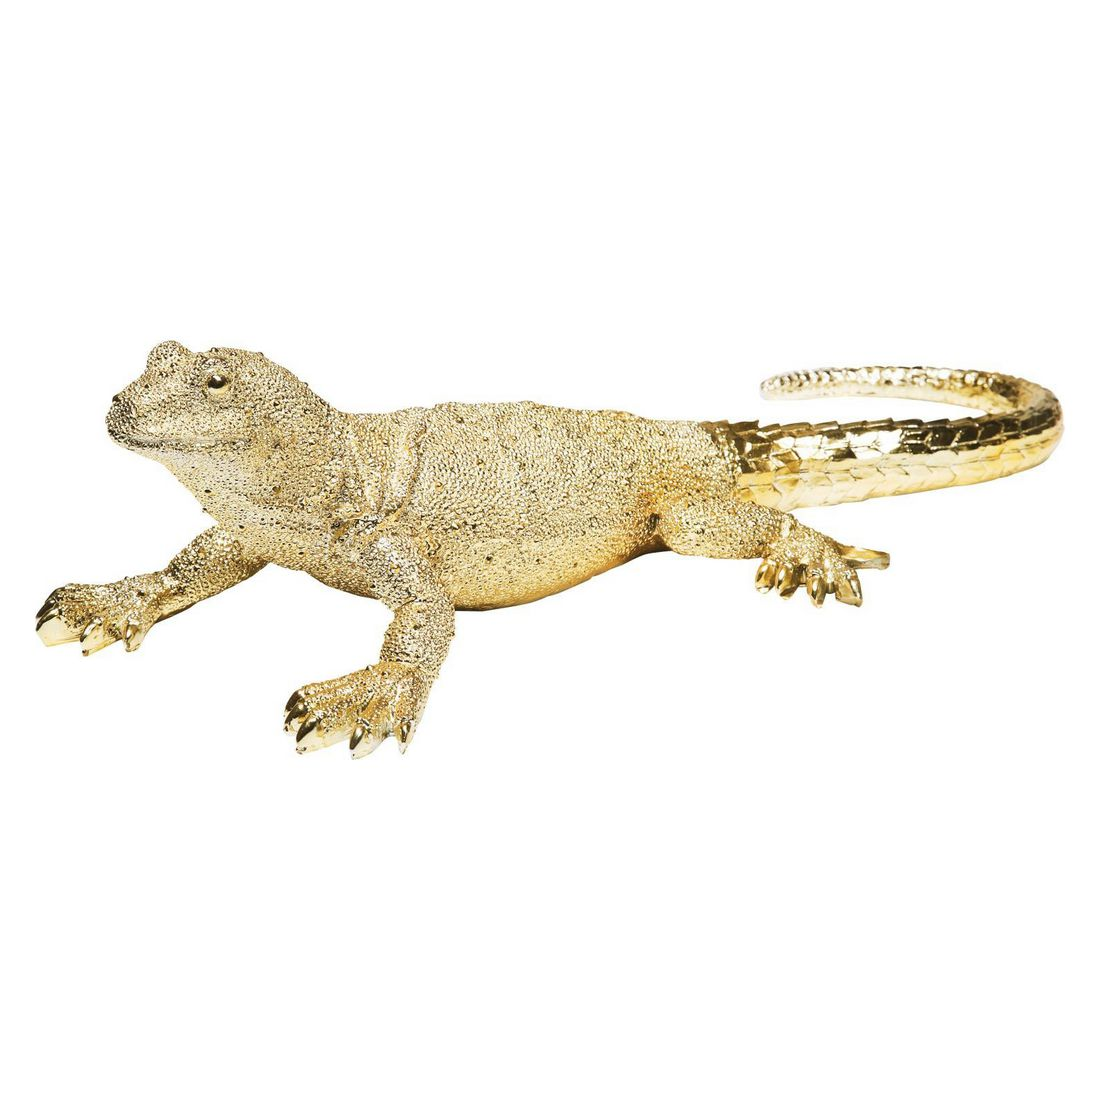 Deko Figur Lizard Gold Big – Polyresin Orange, Kare Design online bestellen